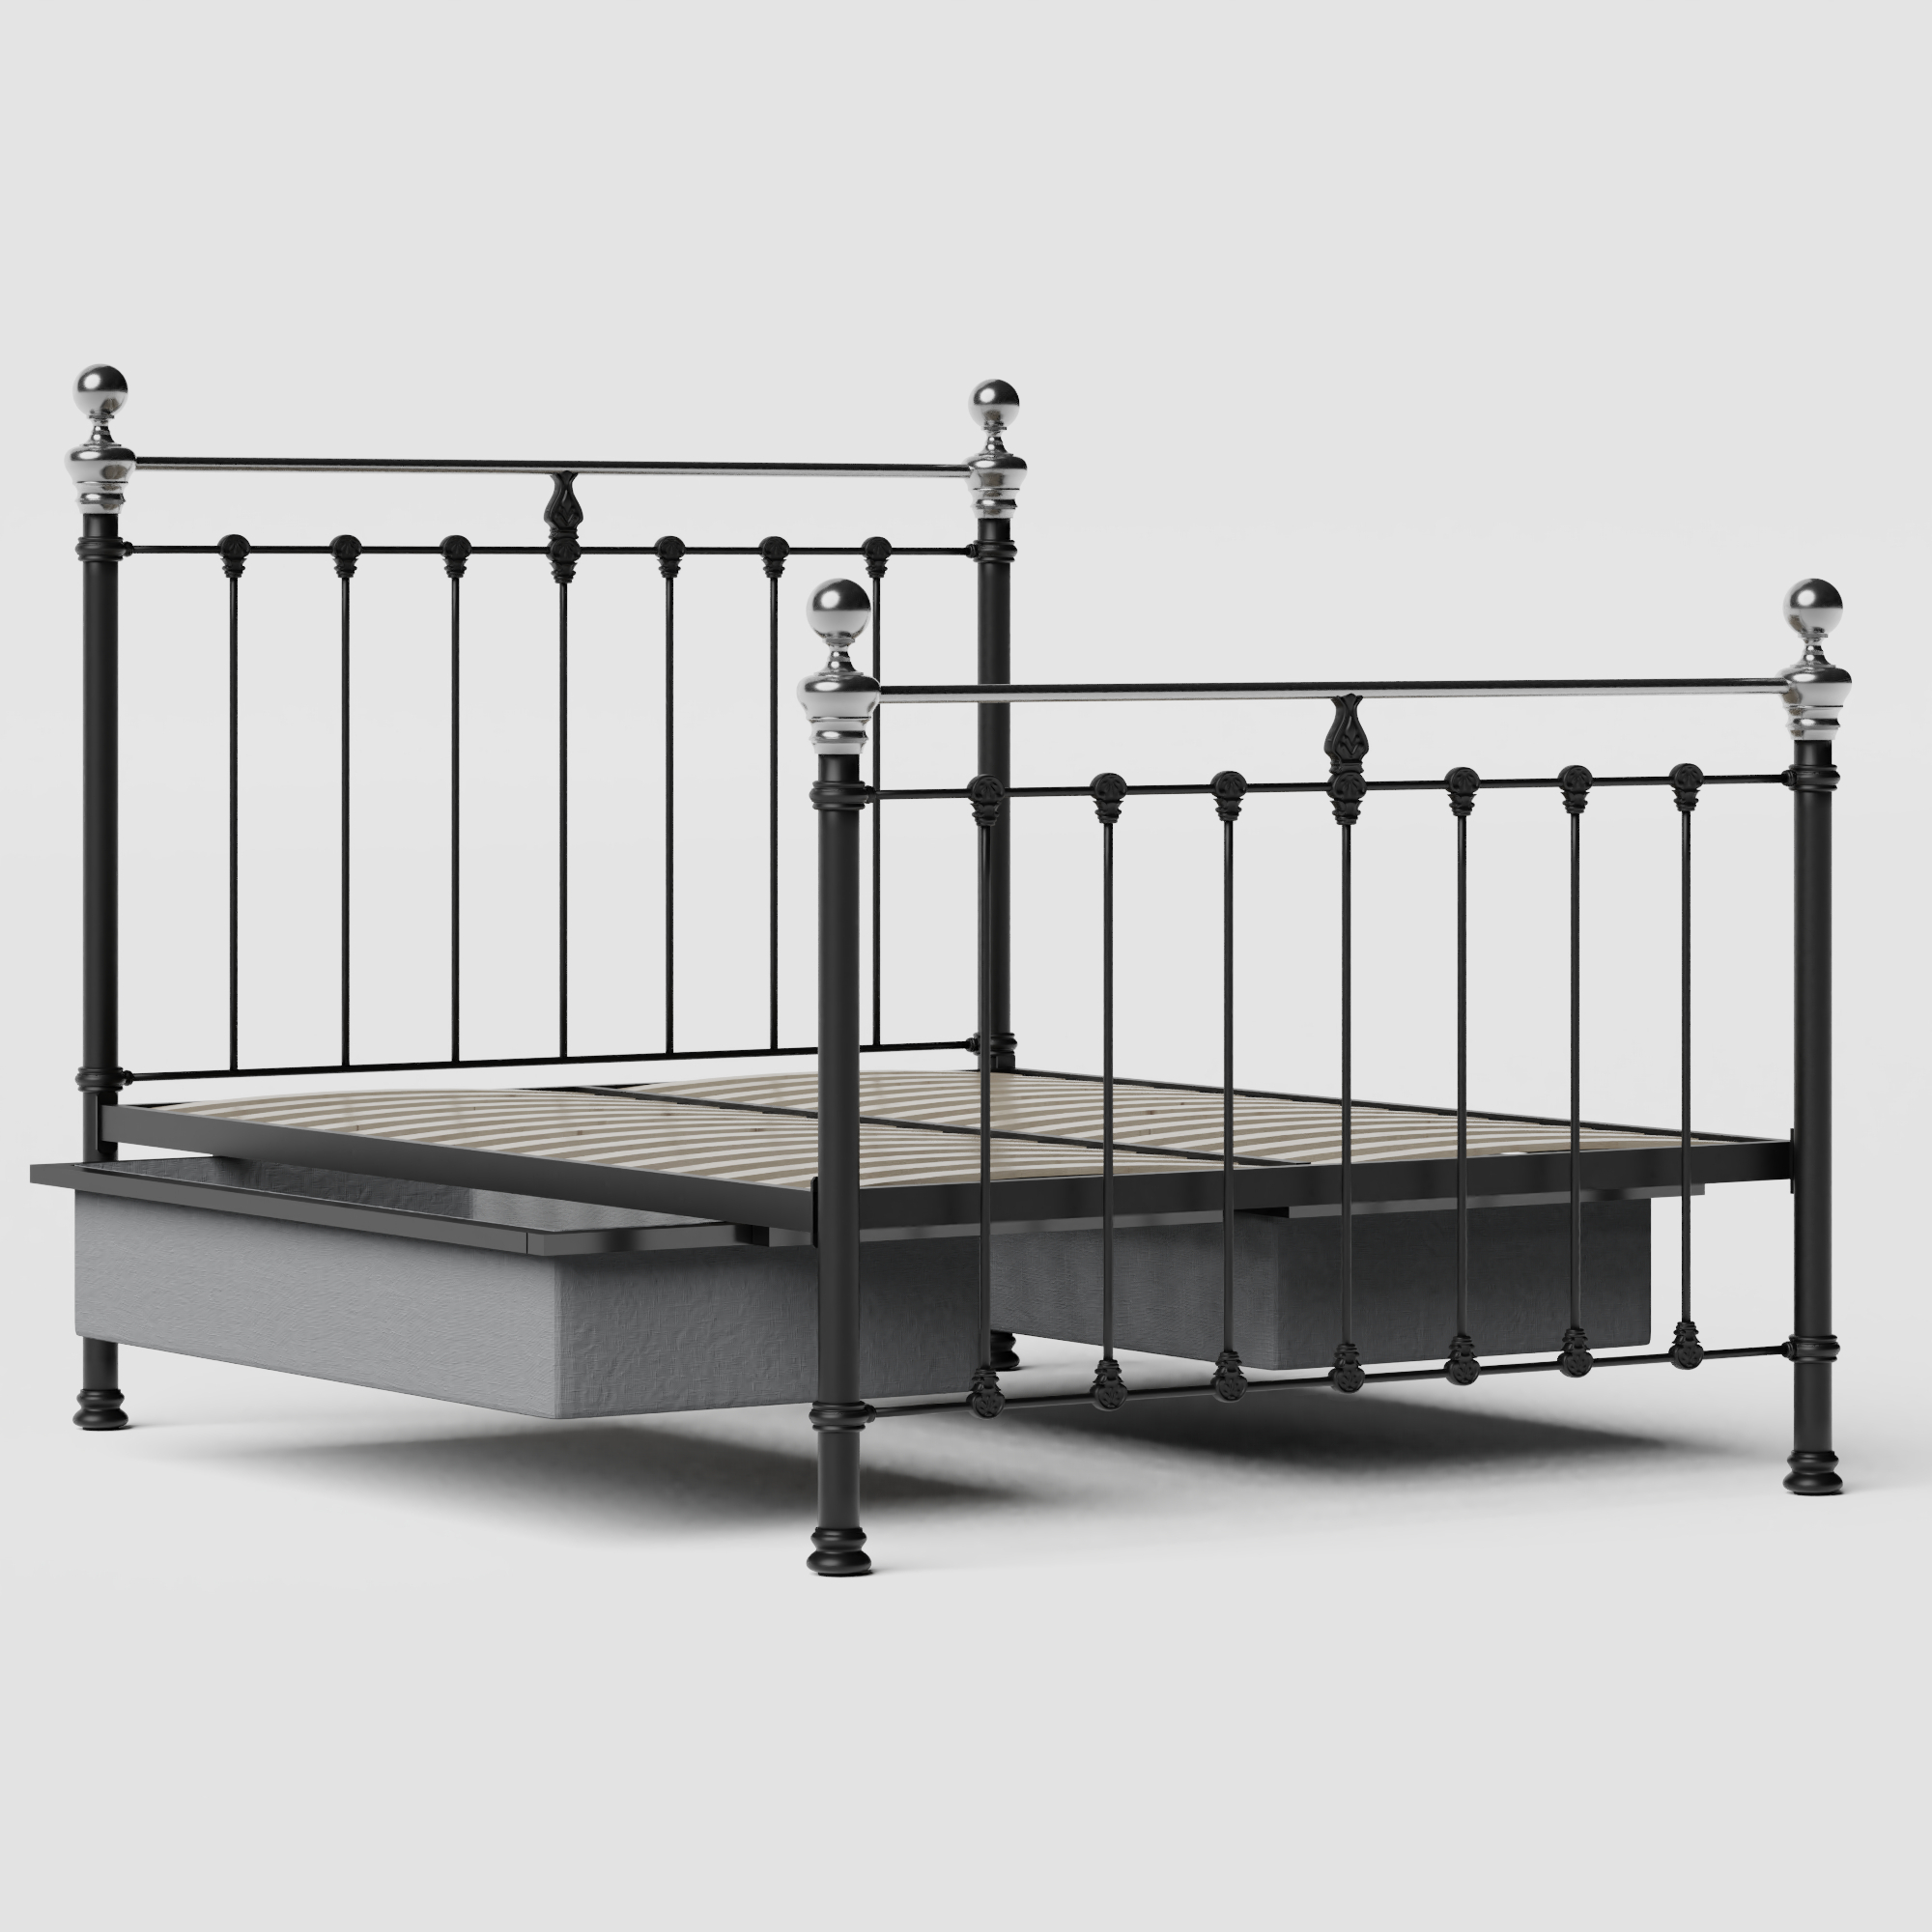 Hamilton Chromo iron/metal bed in black with drawers